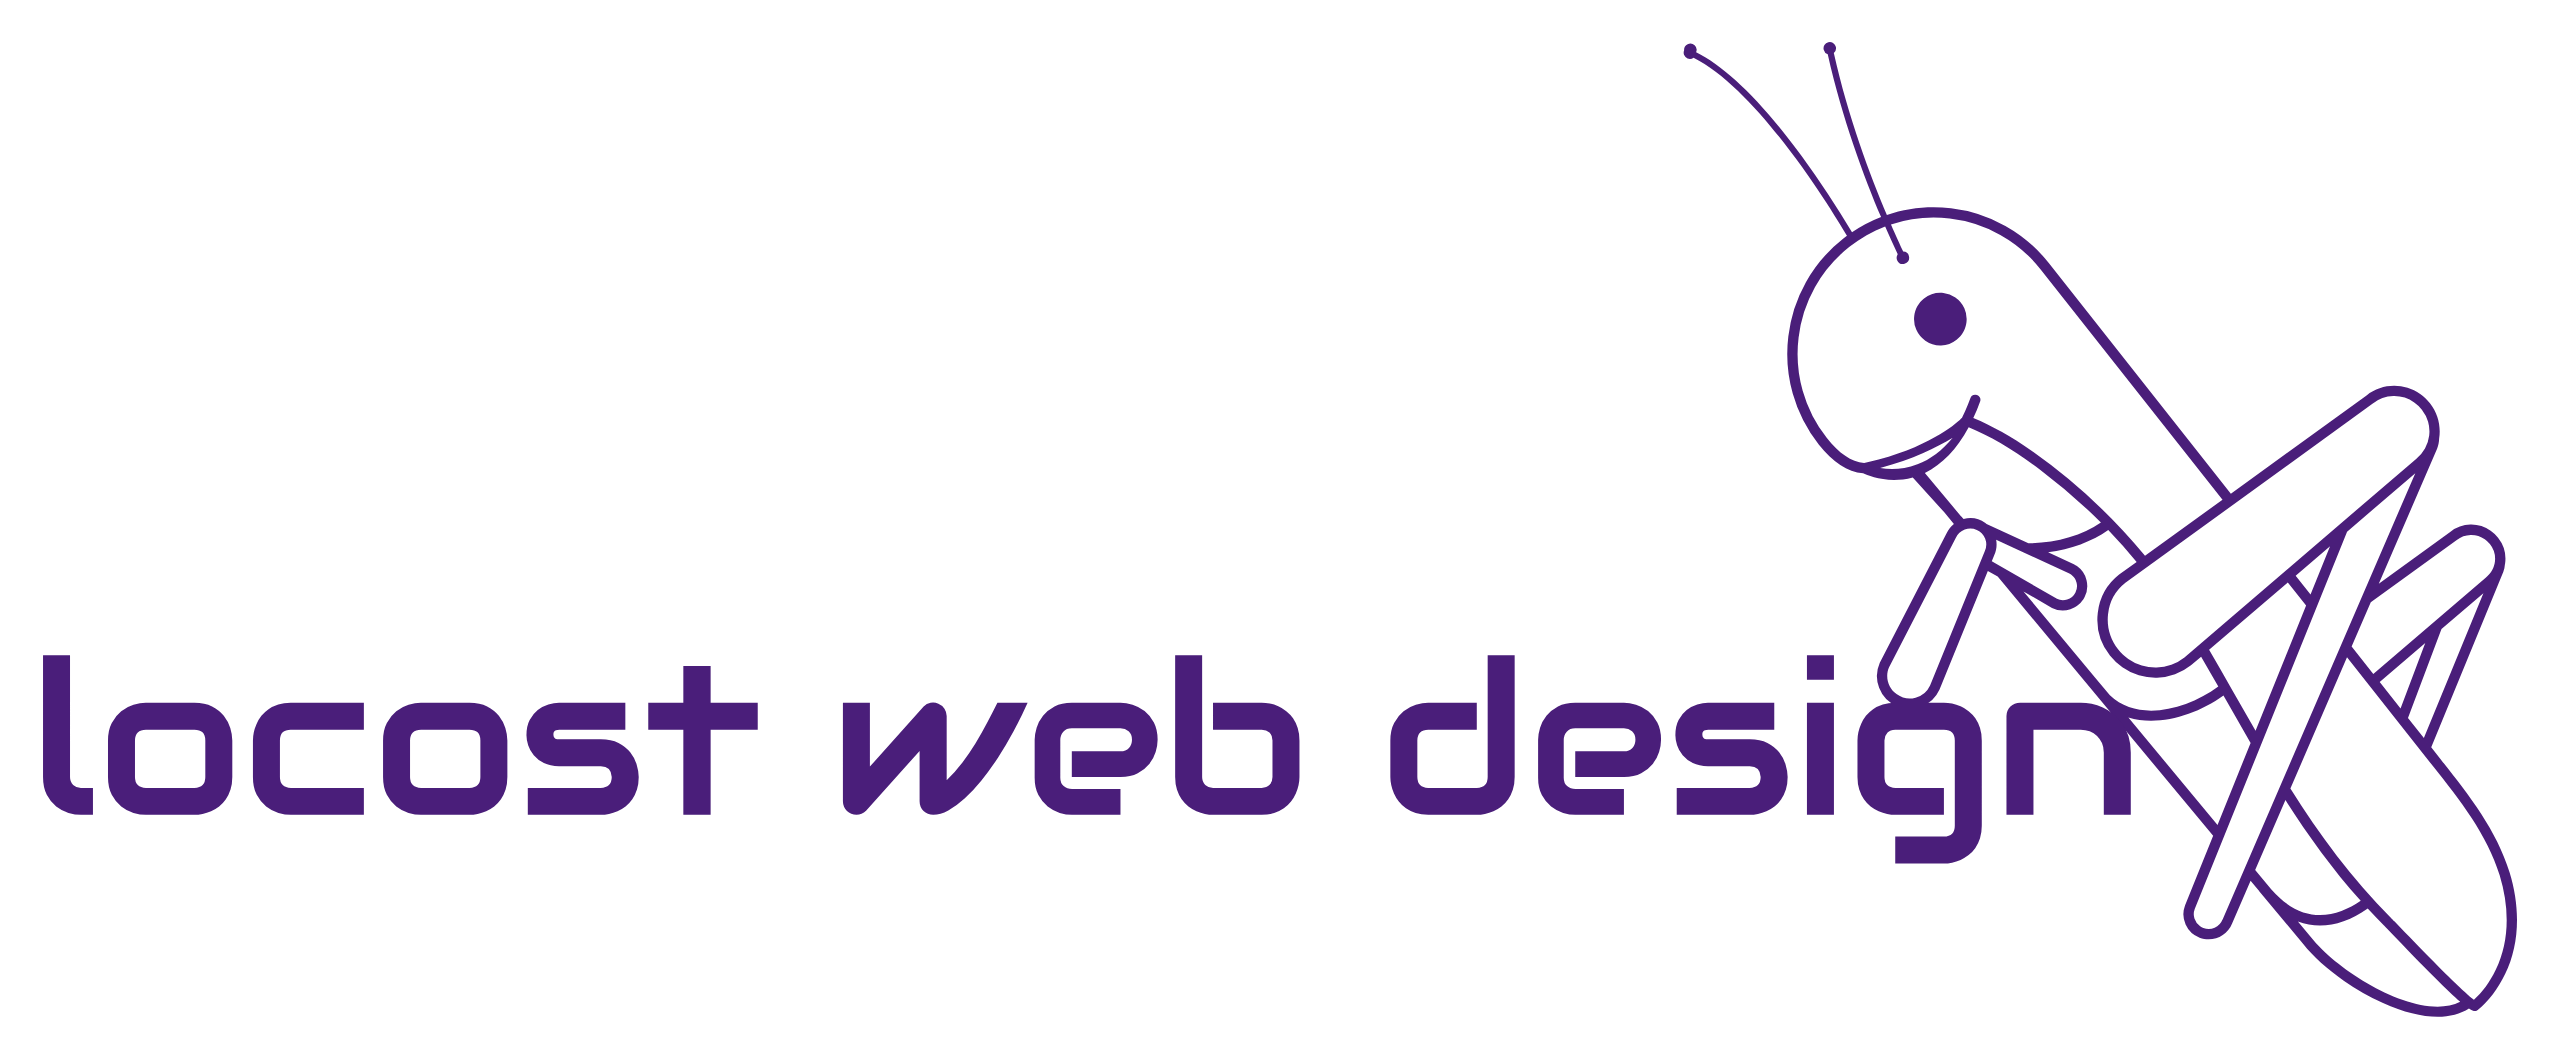 Locost Web Design has been providing web development and internet marketing services in North Jersey for many years to many local and national companies